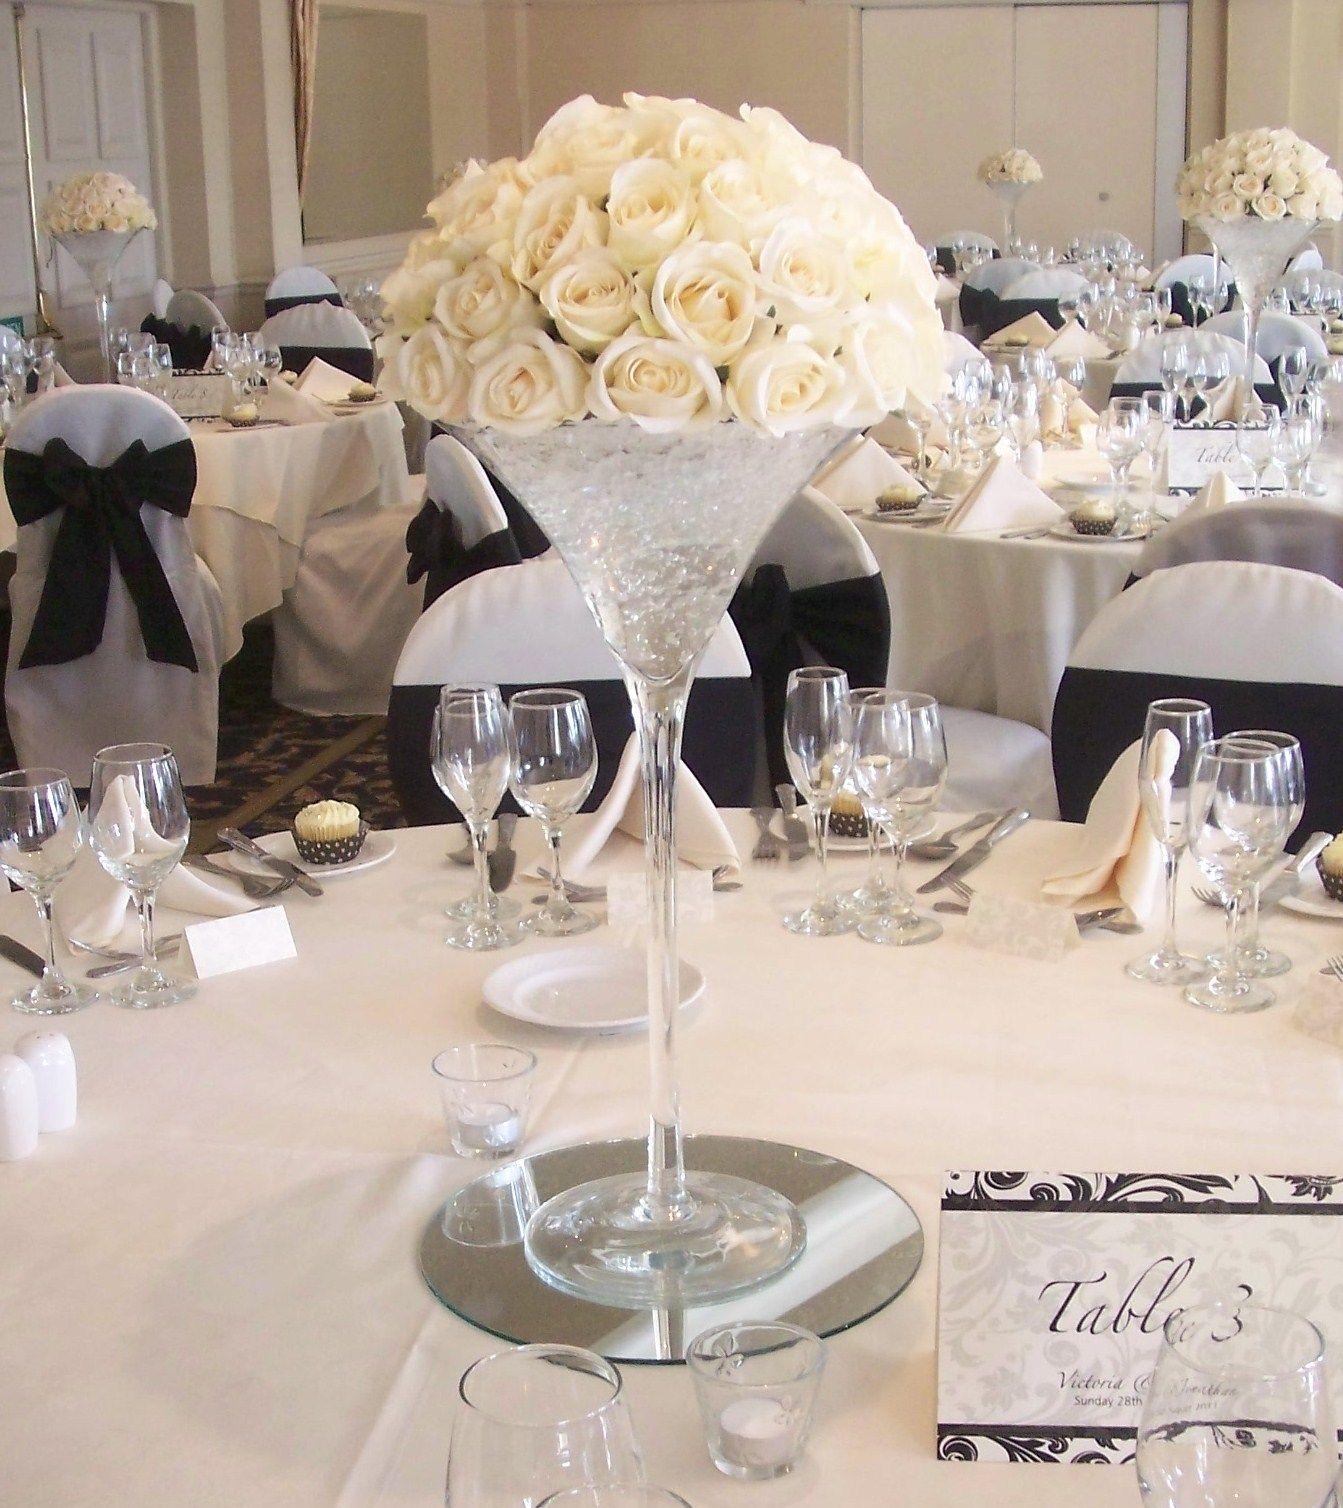 Martini Vase with Ivory Roses Wedding Tables